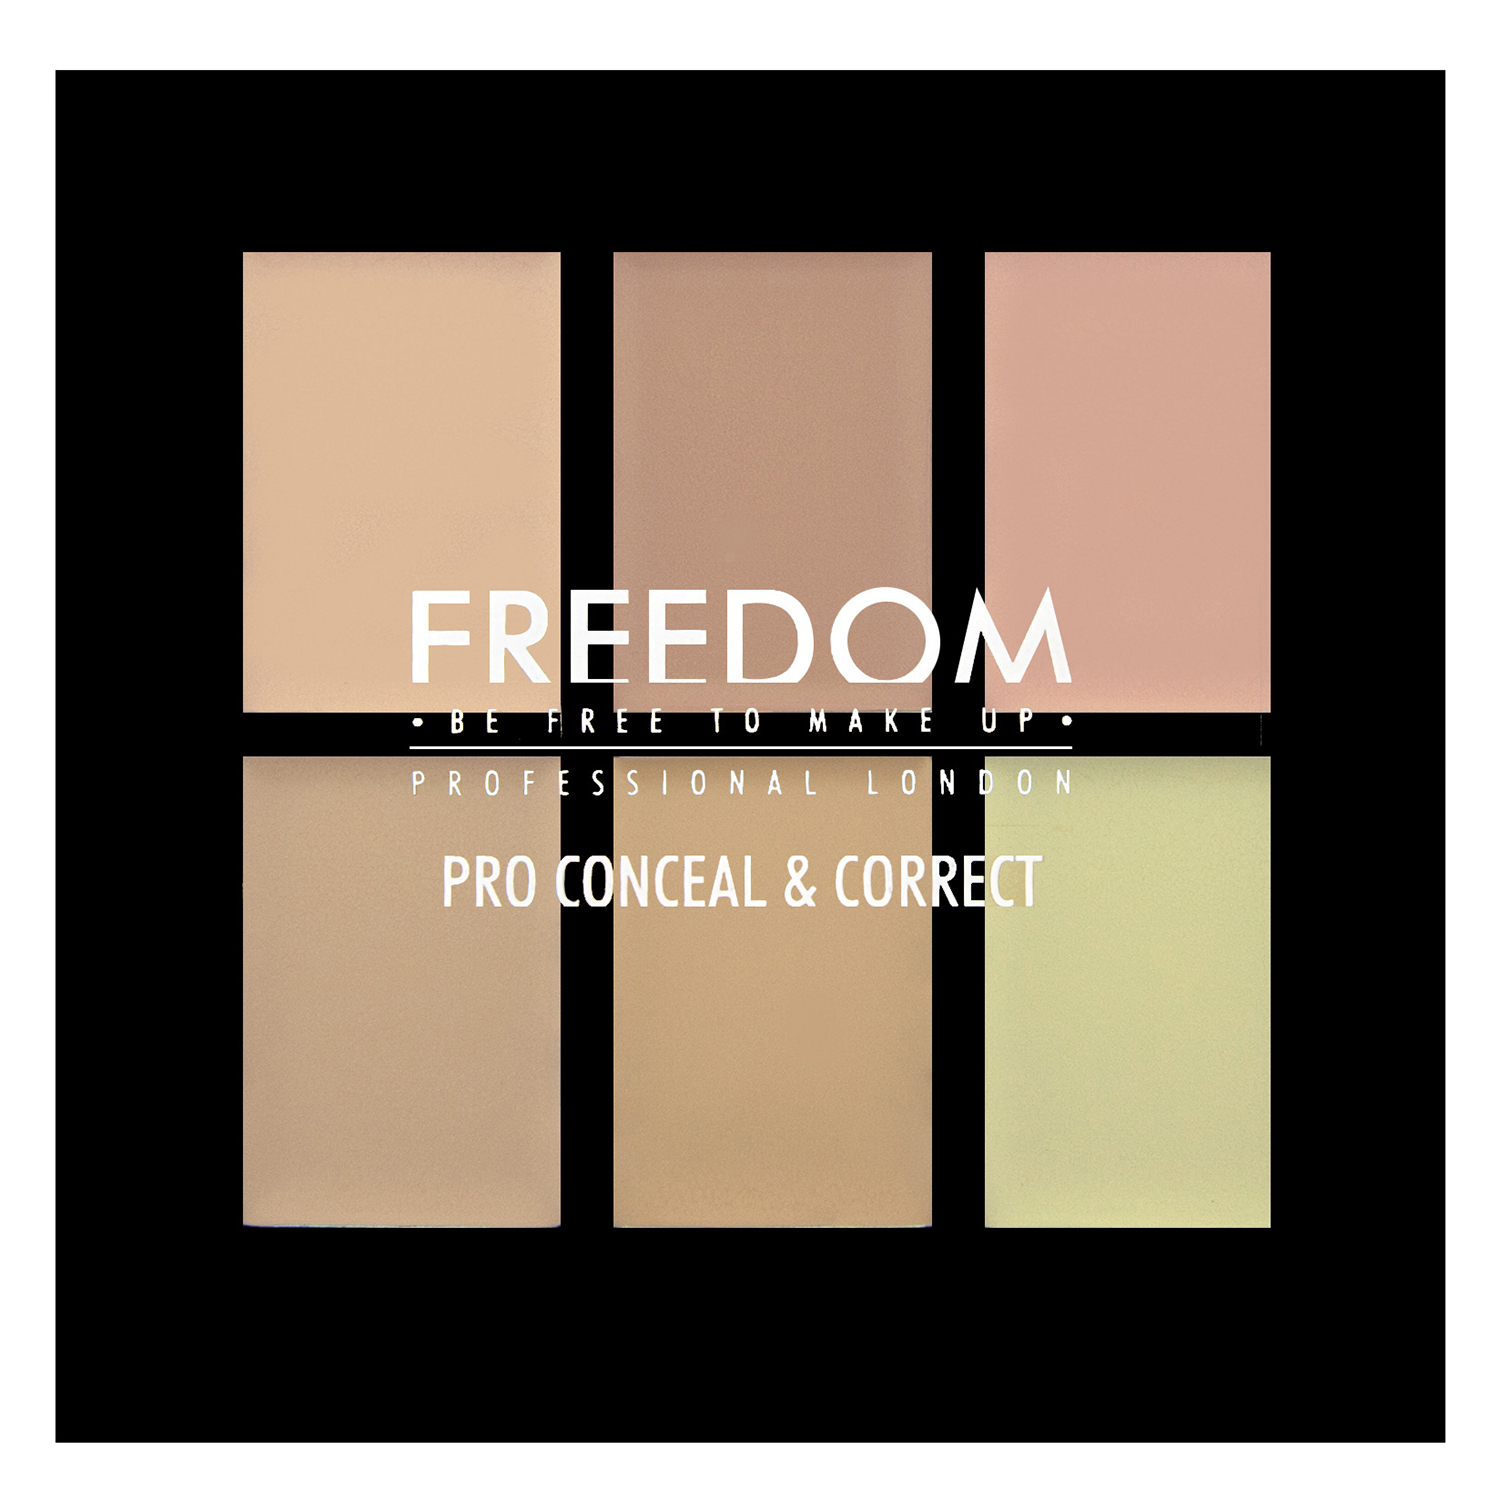 Paleta 6 colores Pro Correct & Concel Light Freedom 1 ud.